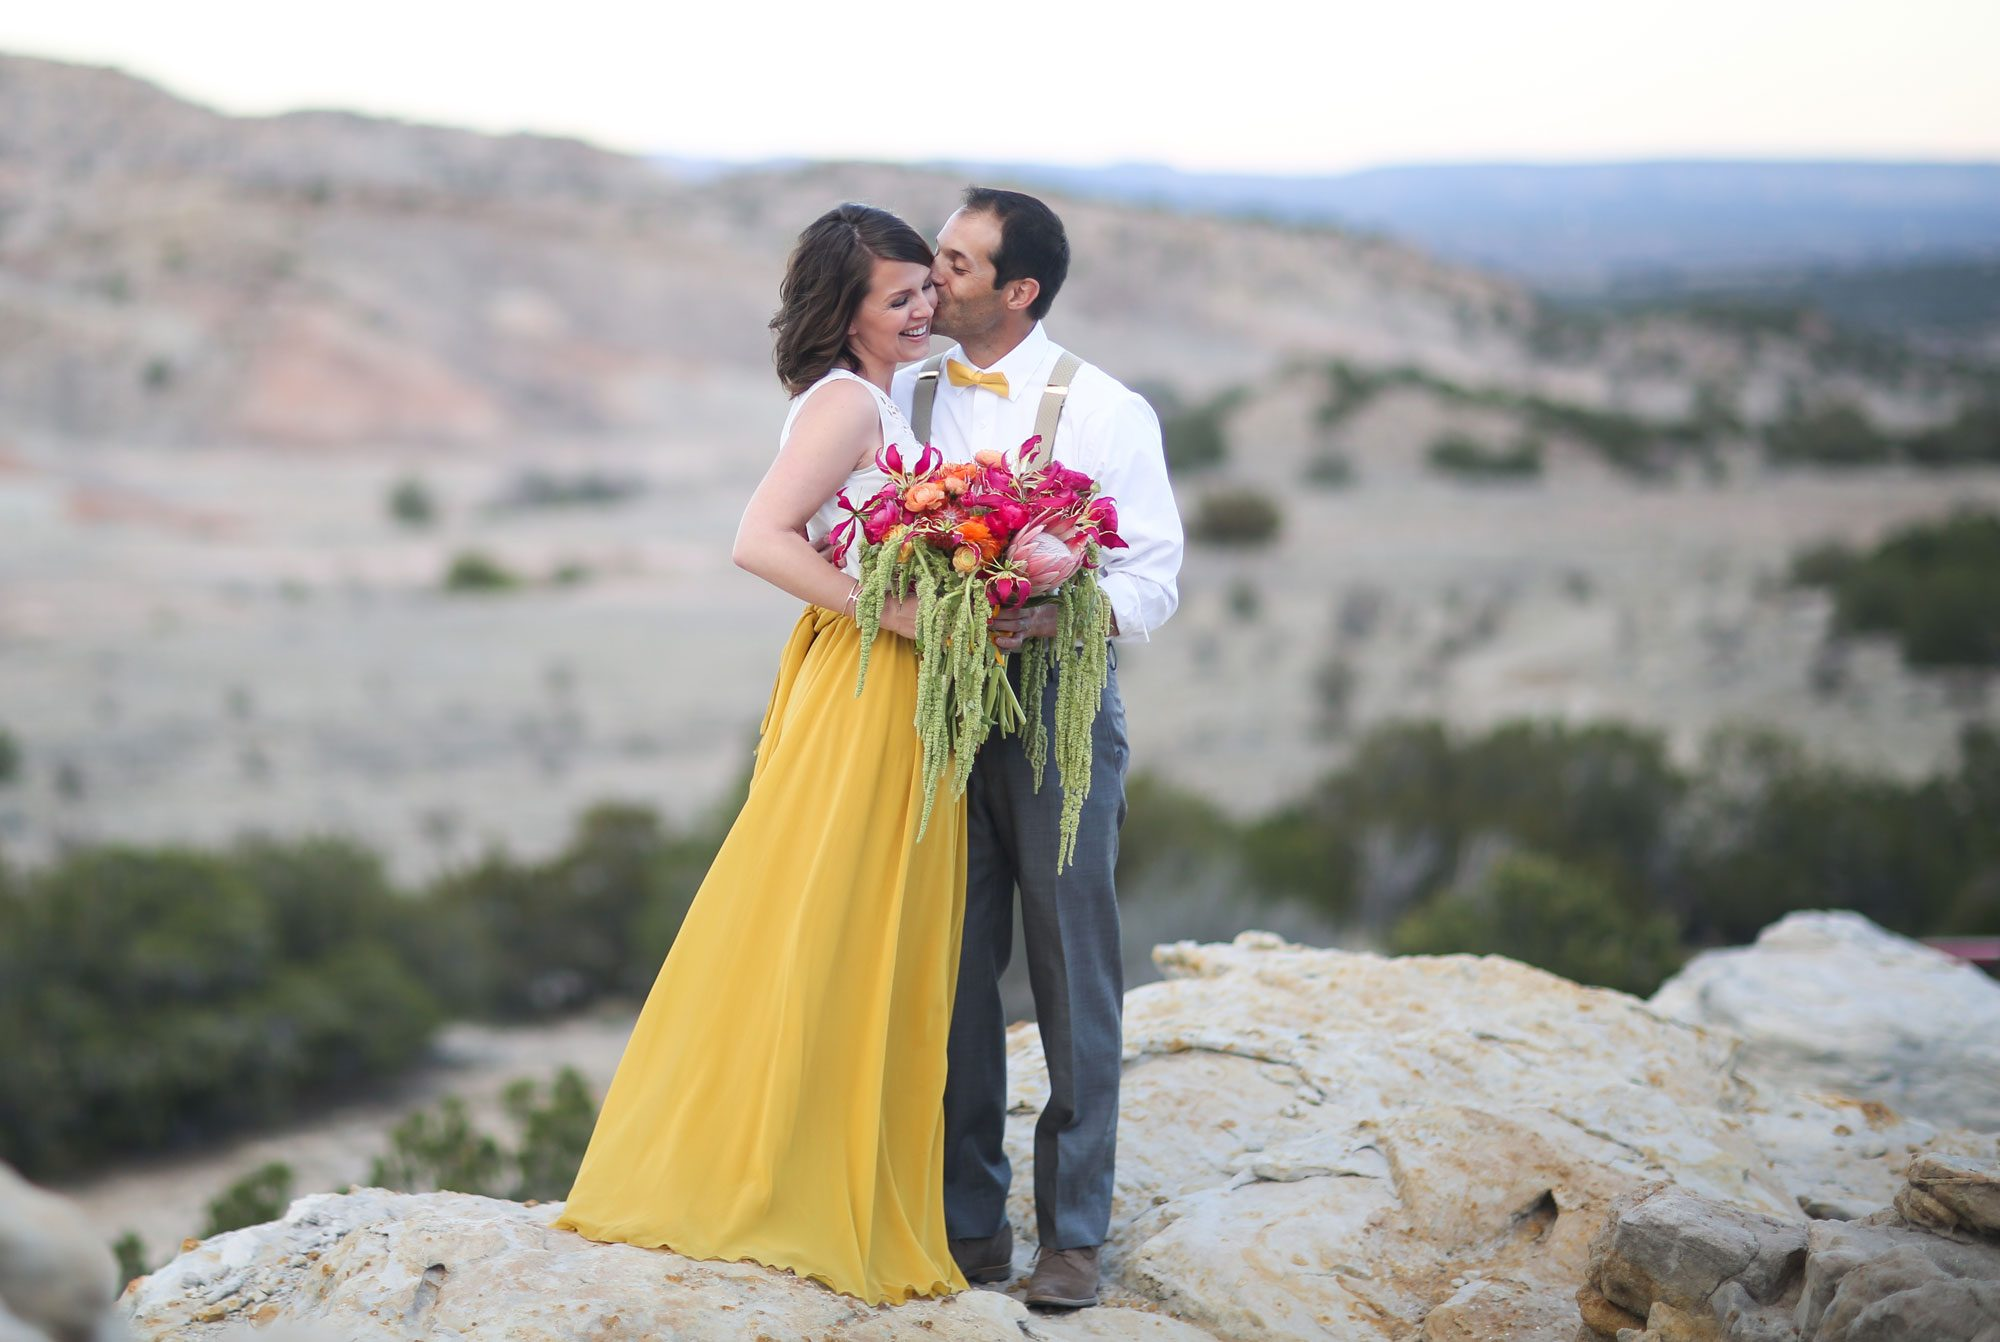 A Vibrant Desert Elopement in New Mexico